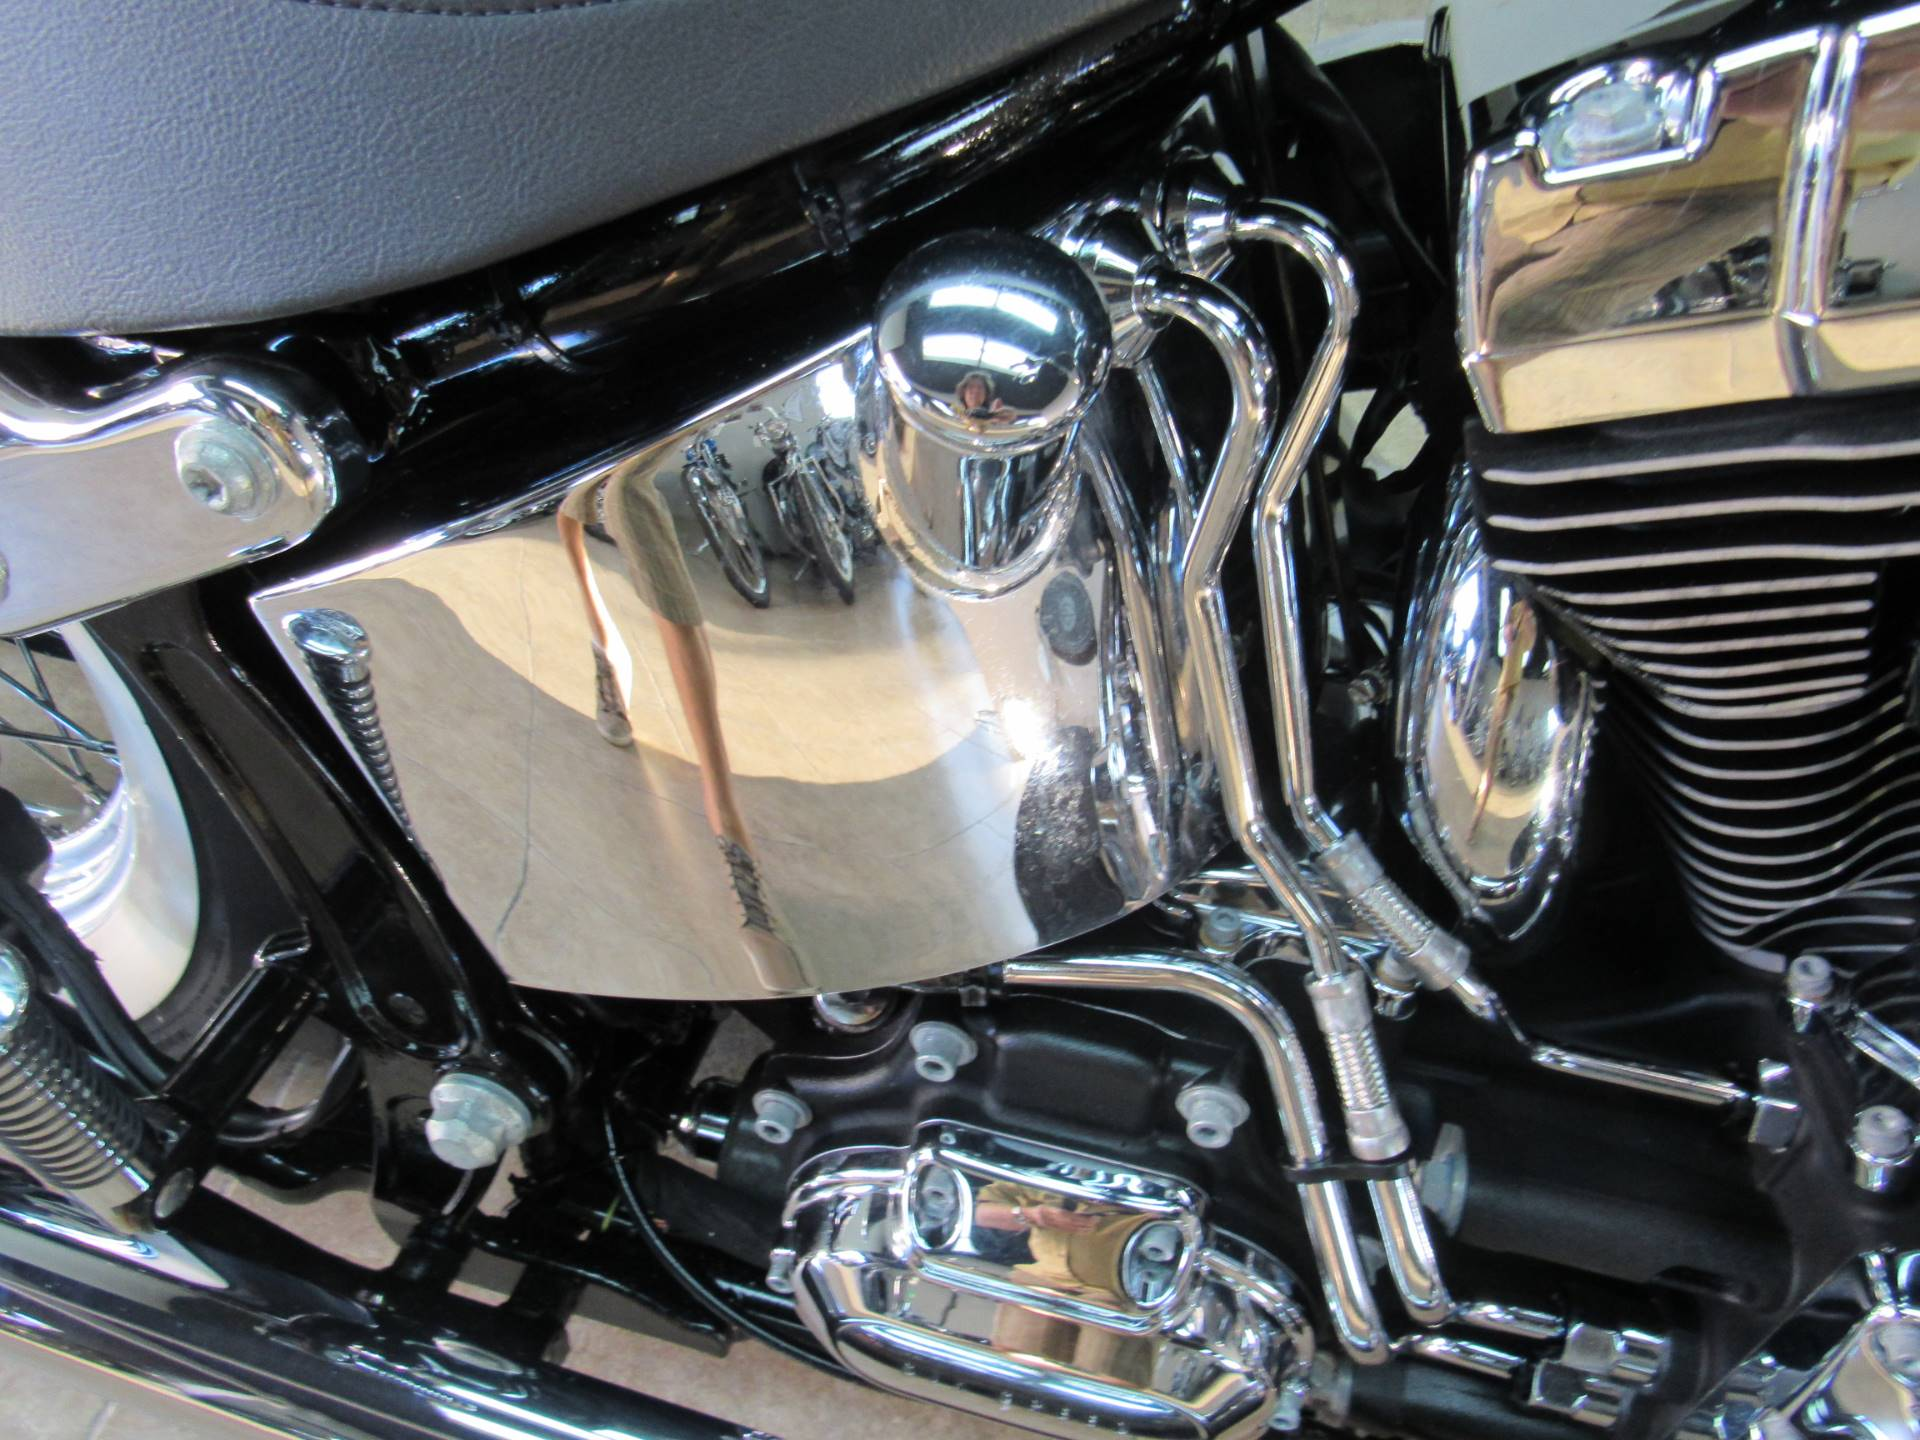 2014 Harley-Davidson Heritage Softail® Classic in Temecula, California - Photo 27